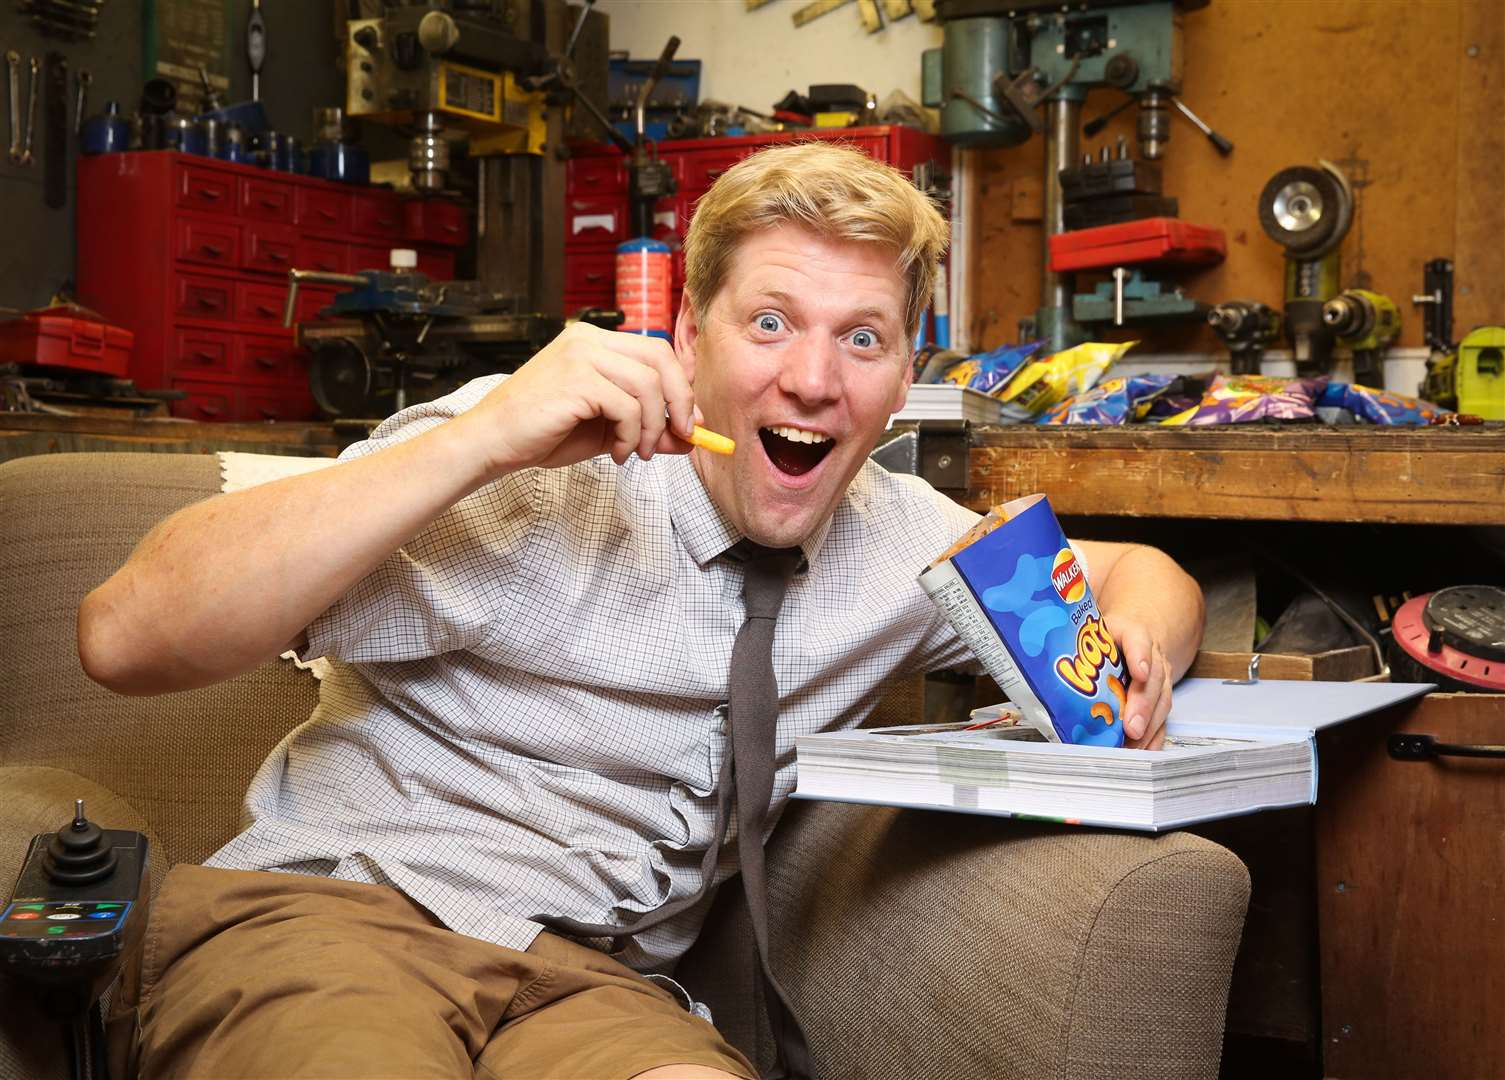 Colin Furze with Wotsits, his favourite crisps that have been hidden in a book